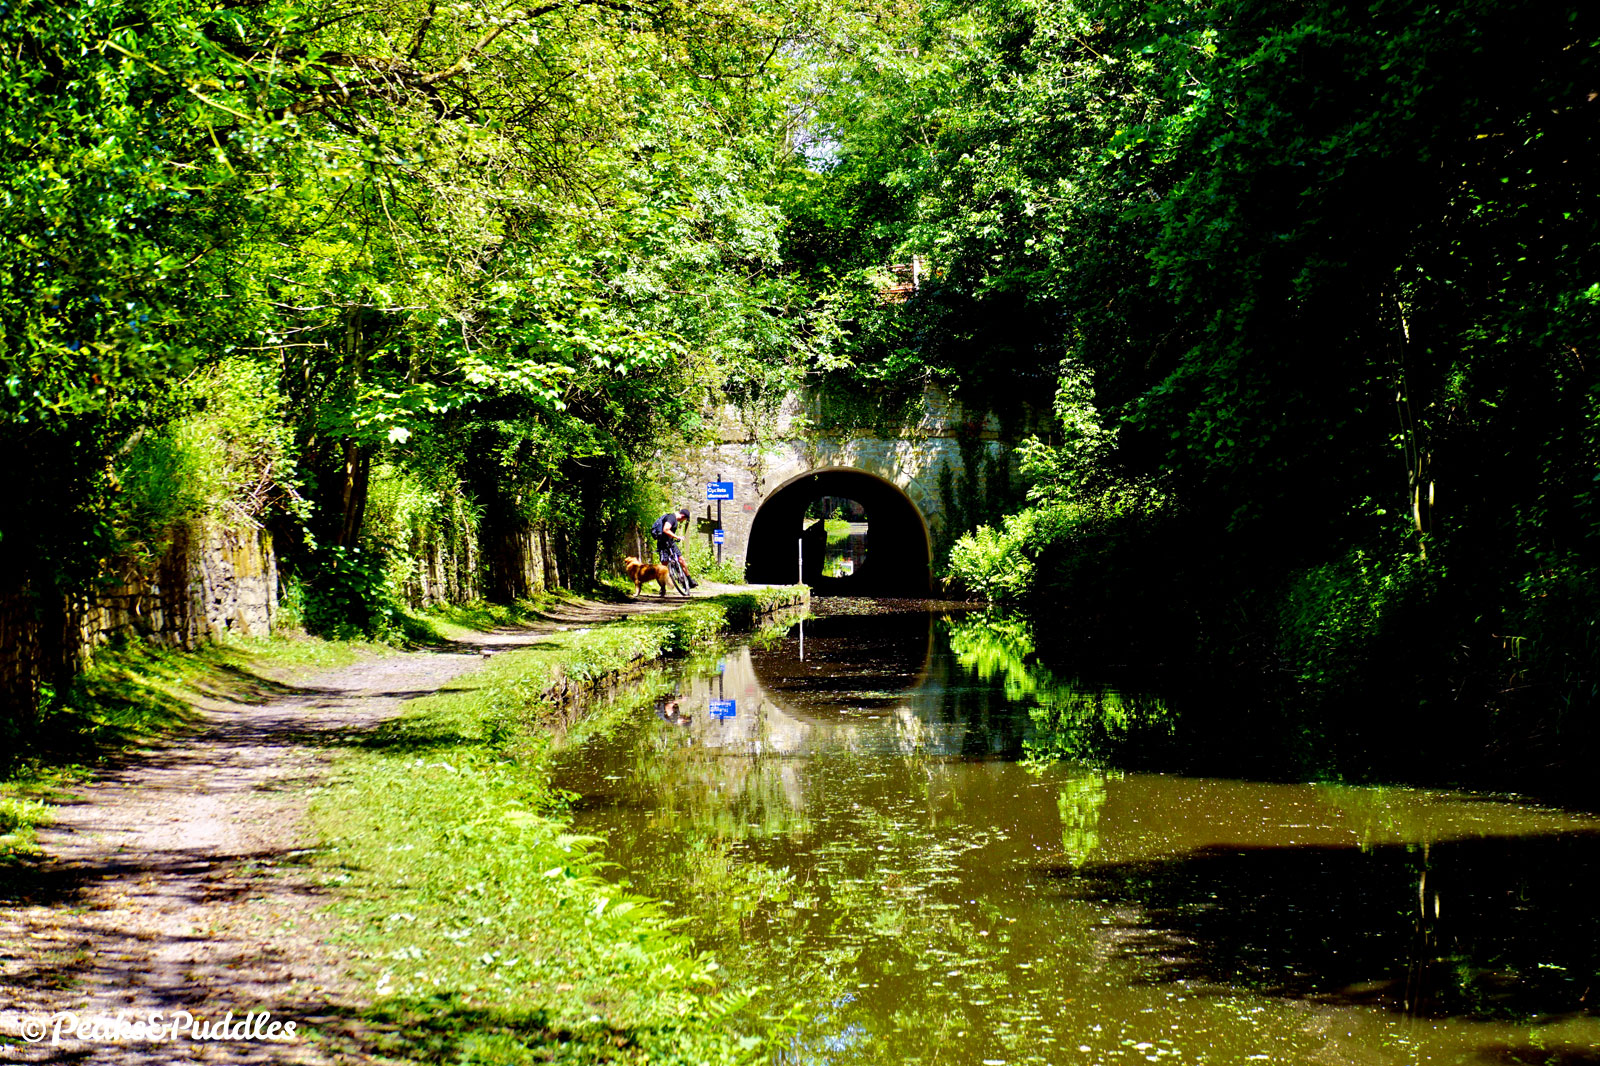 Woodley Tunnel is tricky and time-consuming to avoid, requiring steps and a lengthy diversion. Better to just bring a torch and good nerves.